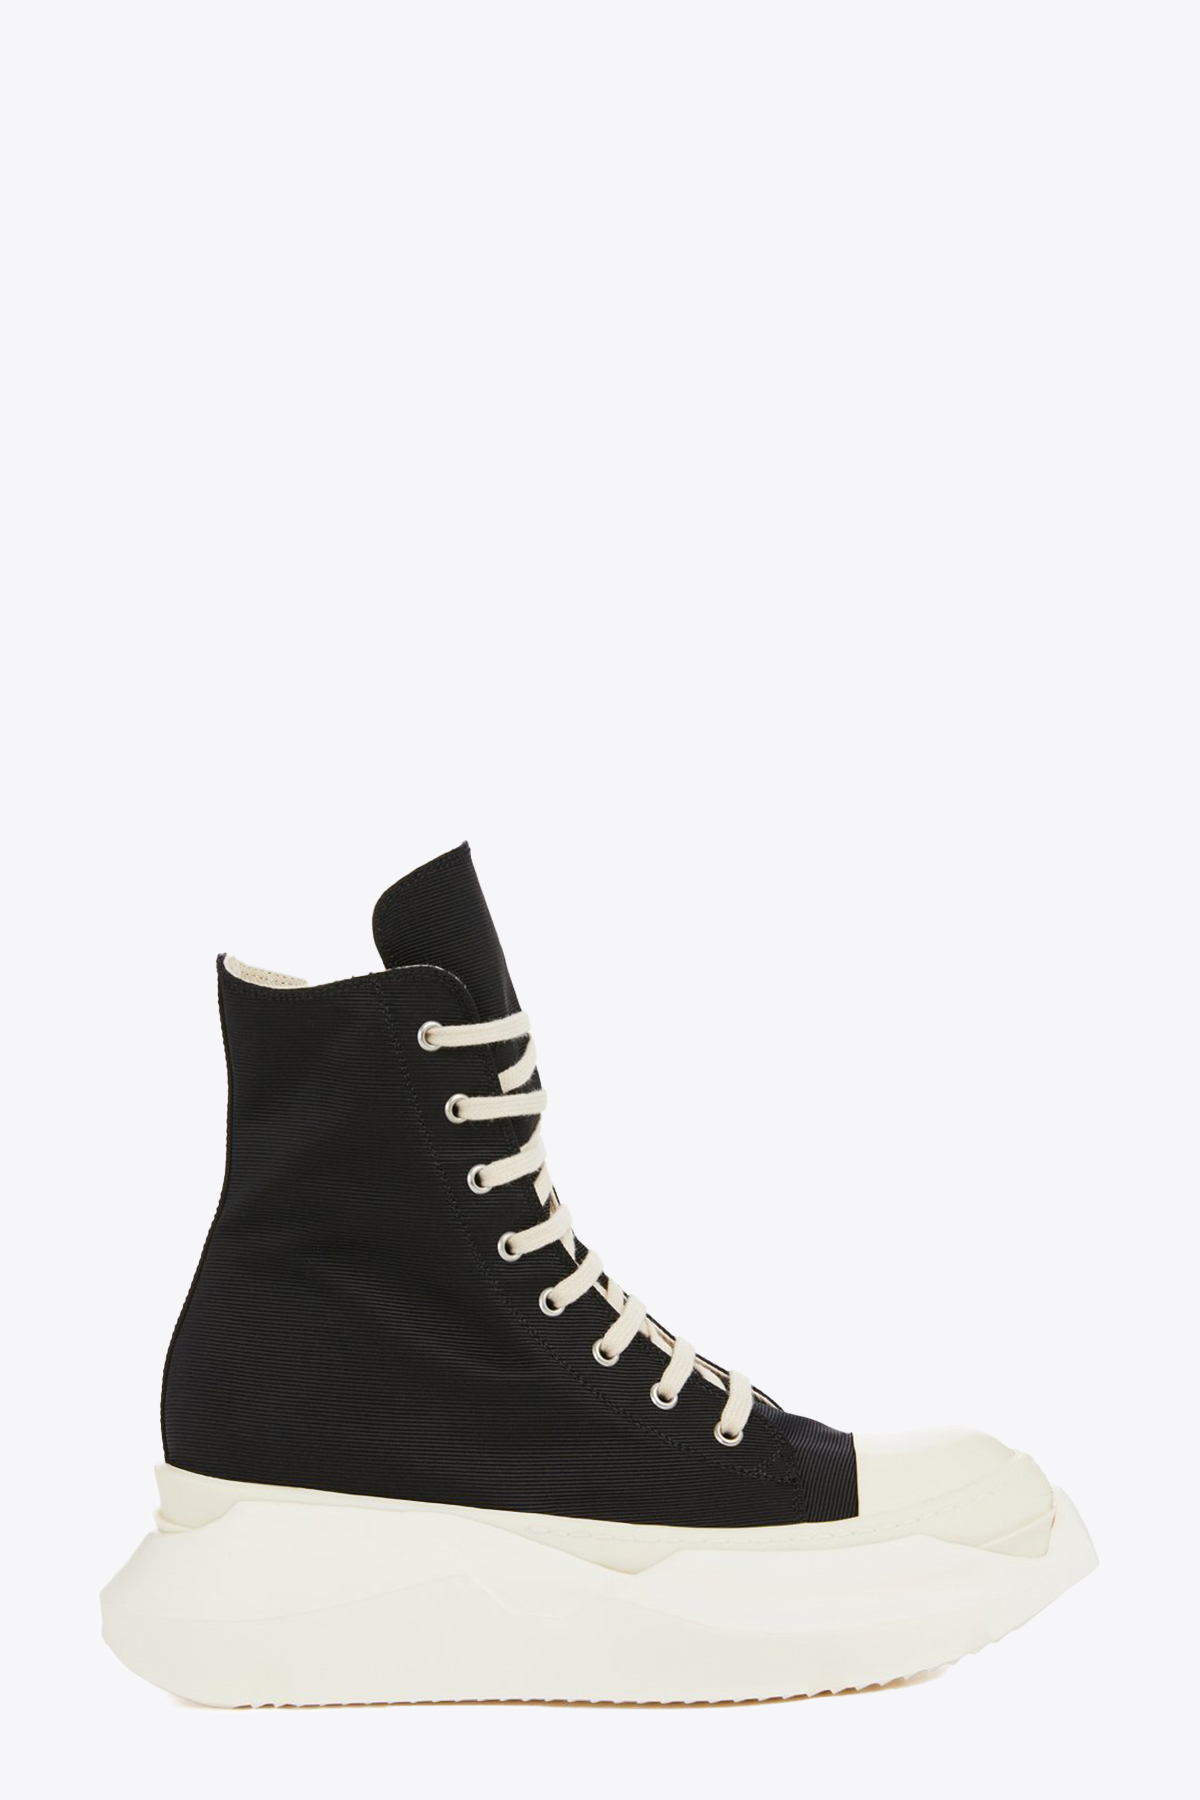 ABSTRACT SNEAKERS RICK OWENS-DRKSHDW | 10000039 | DU02A3840 FC ABSTRACT SNEAKERS9111